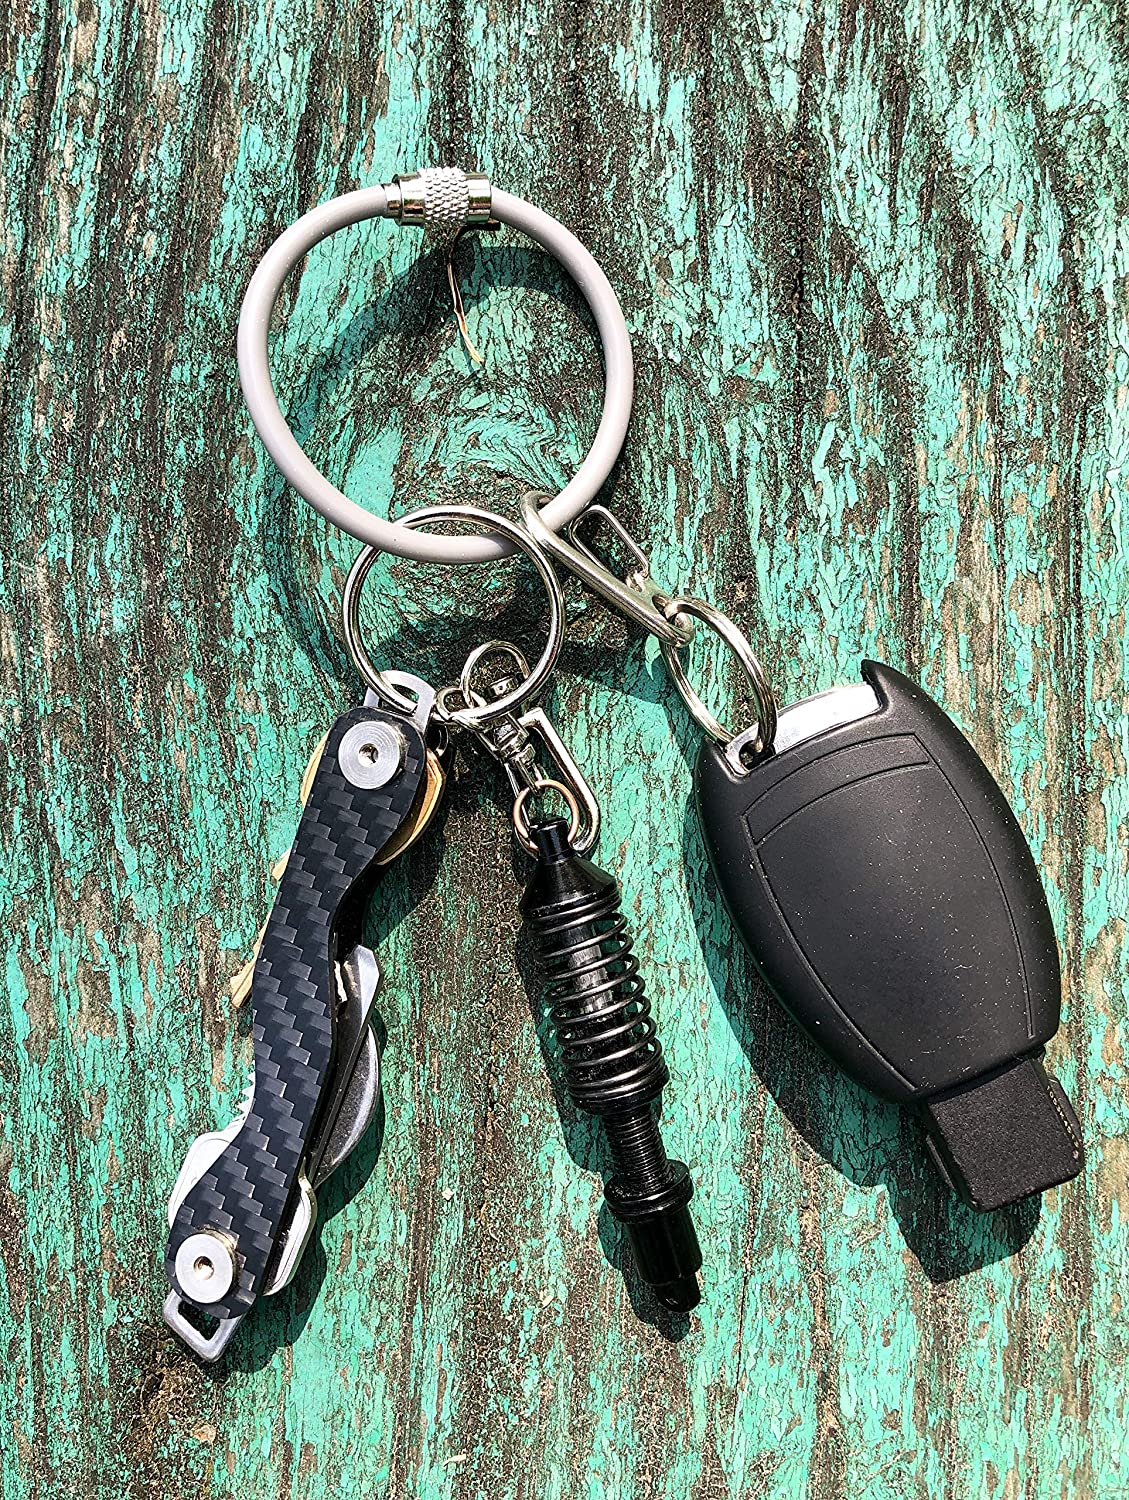 Silipac Metal Cable Key Ring-Heavy Duty Tough Stainless Steel Wire Durable Keychains Twist Lock Carabiner-for Luggage Tag Loops Travelling Key Organizer-4 Pcs Gray Silicone Coated Thick 4mm 6.3 inch